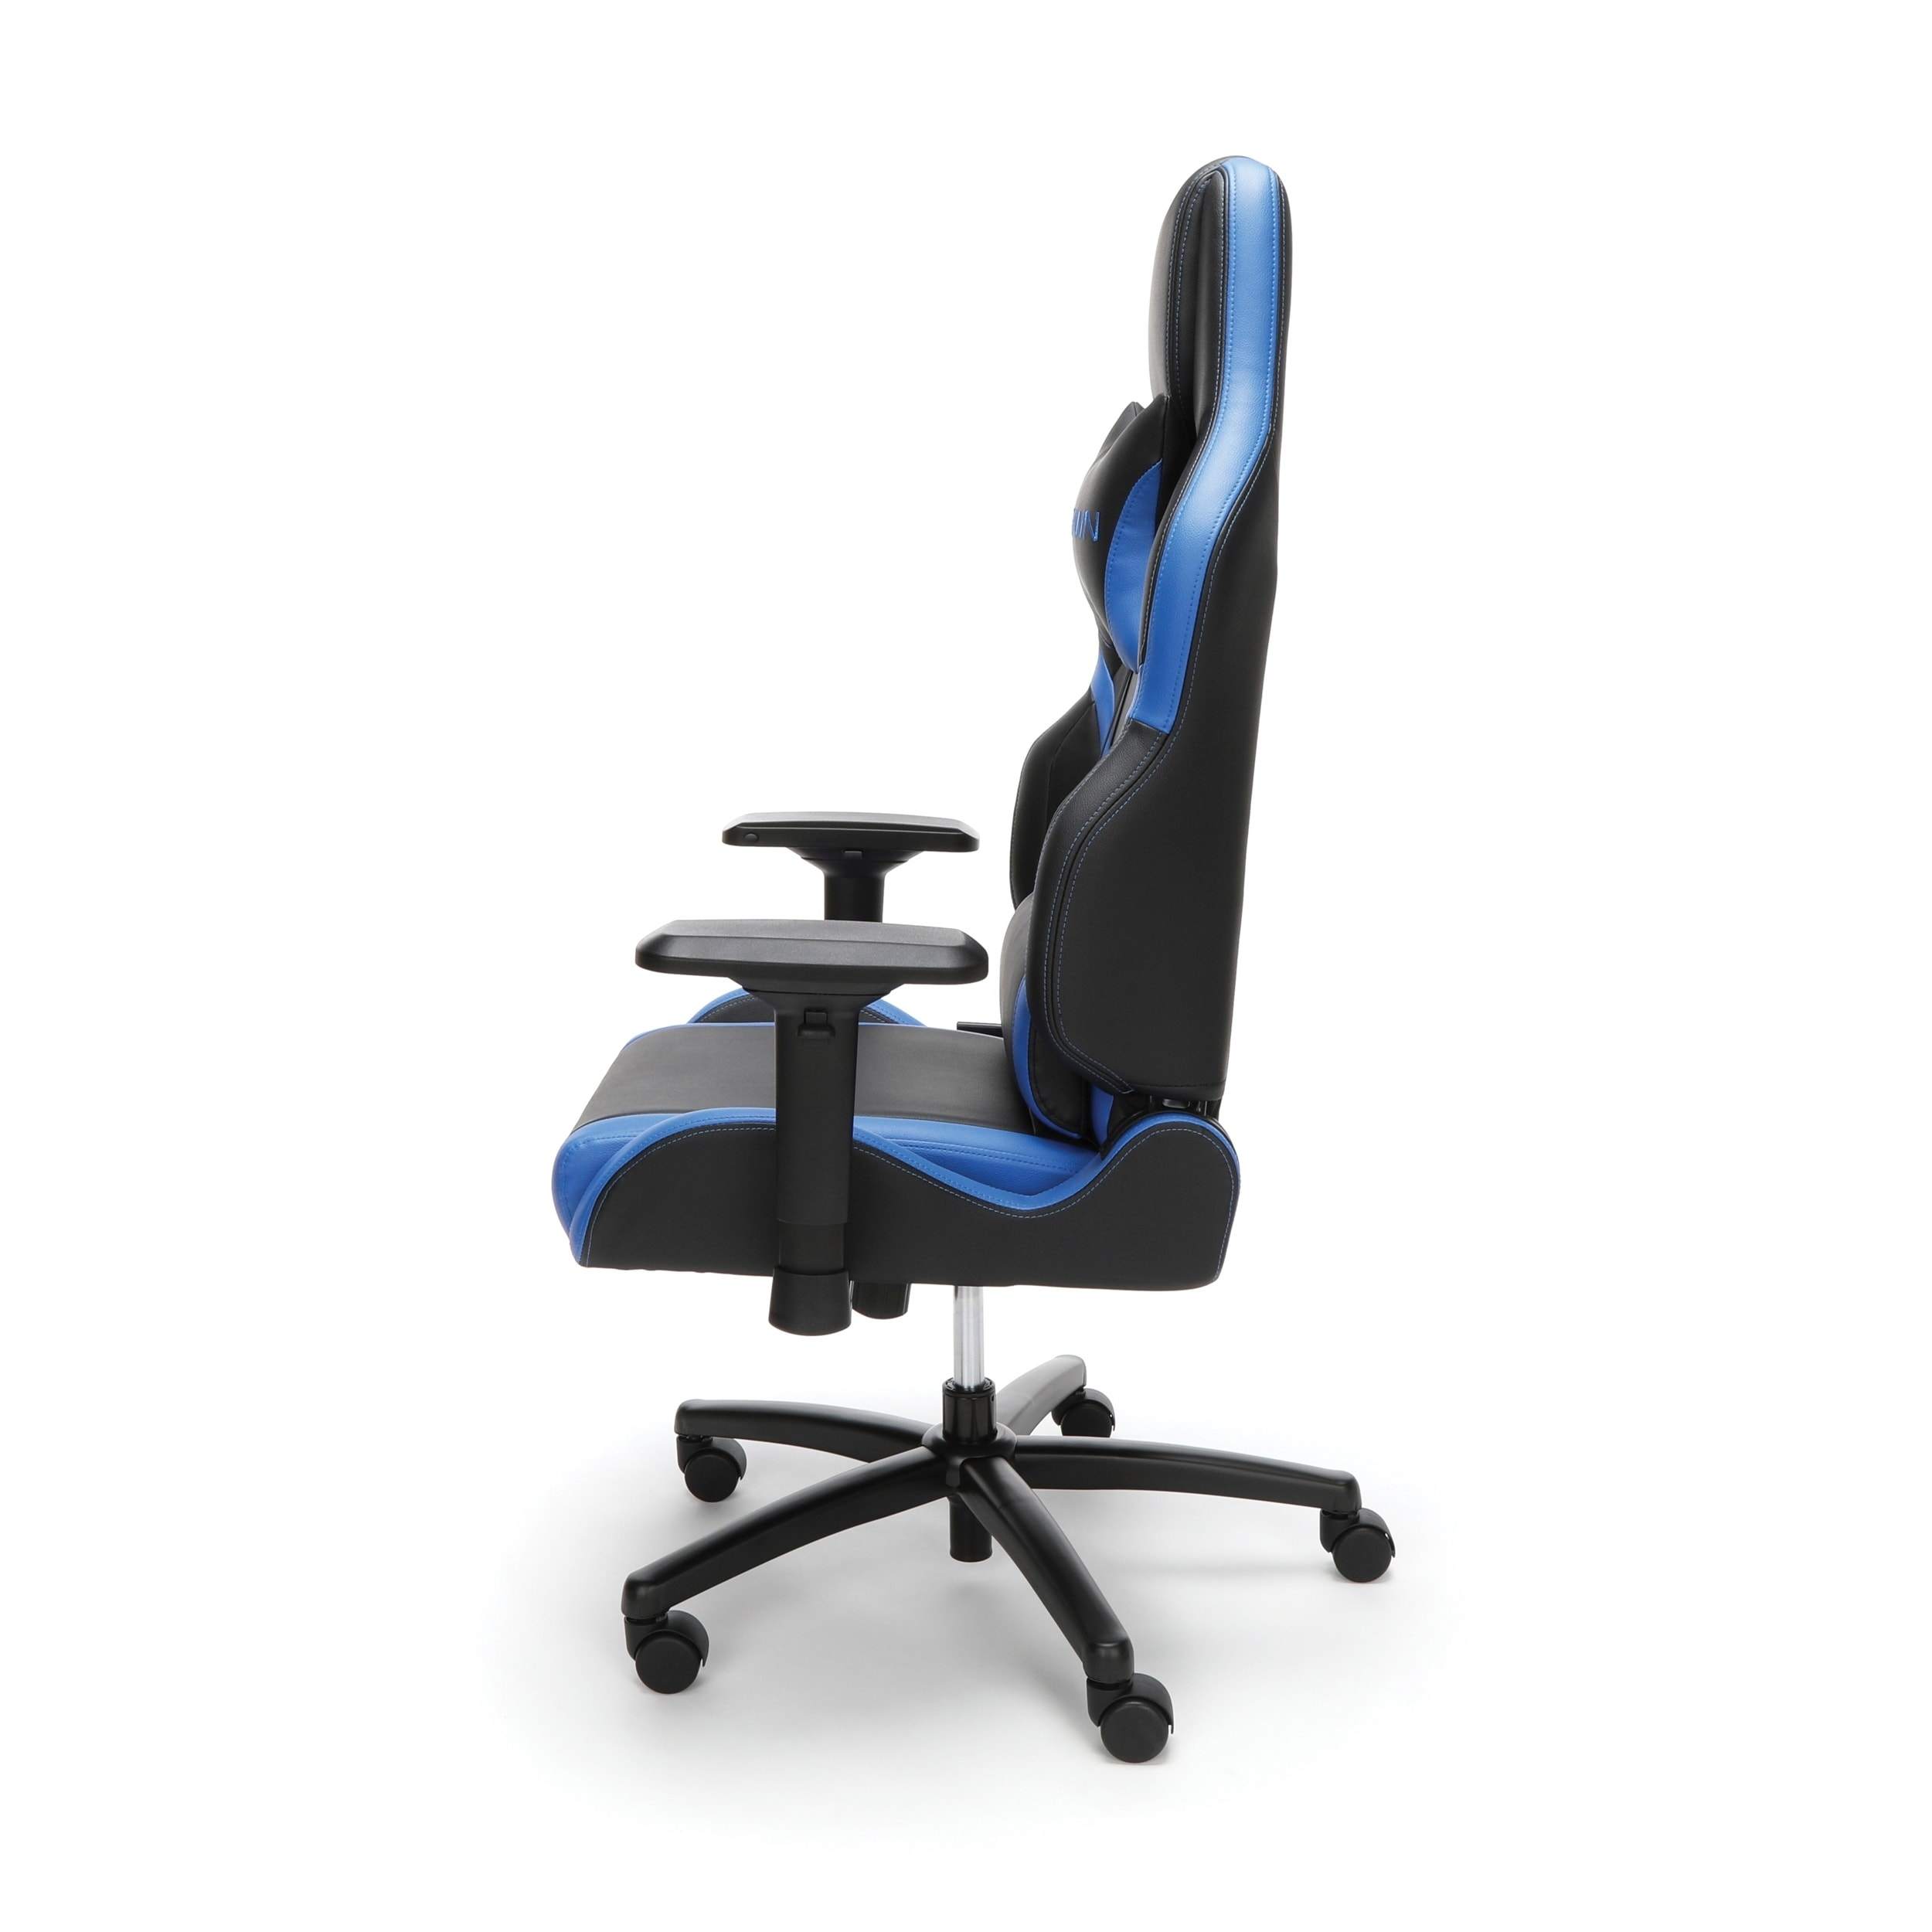 Strange Respawn 400 Racing Style Gaming Chair Big And Tall Leather Lamtechconsult Wood Chair Design Ideas Lamtechconsultcom